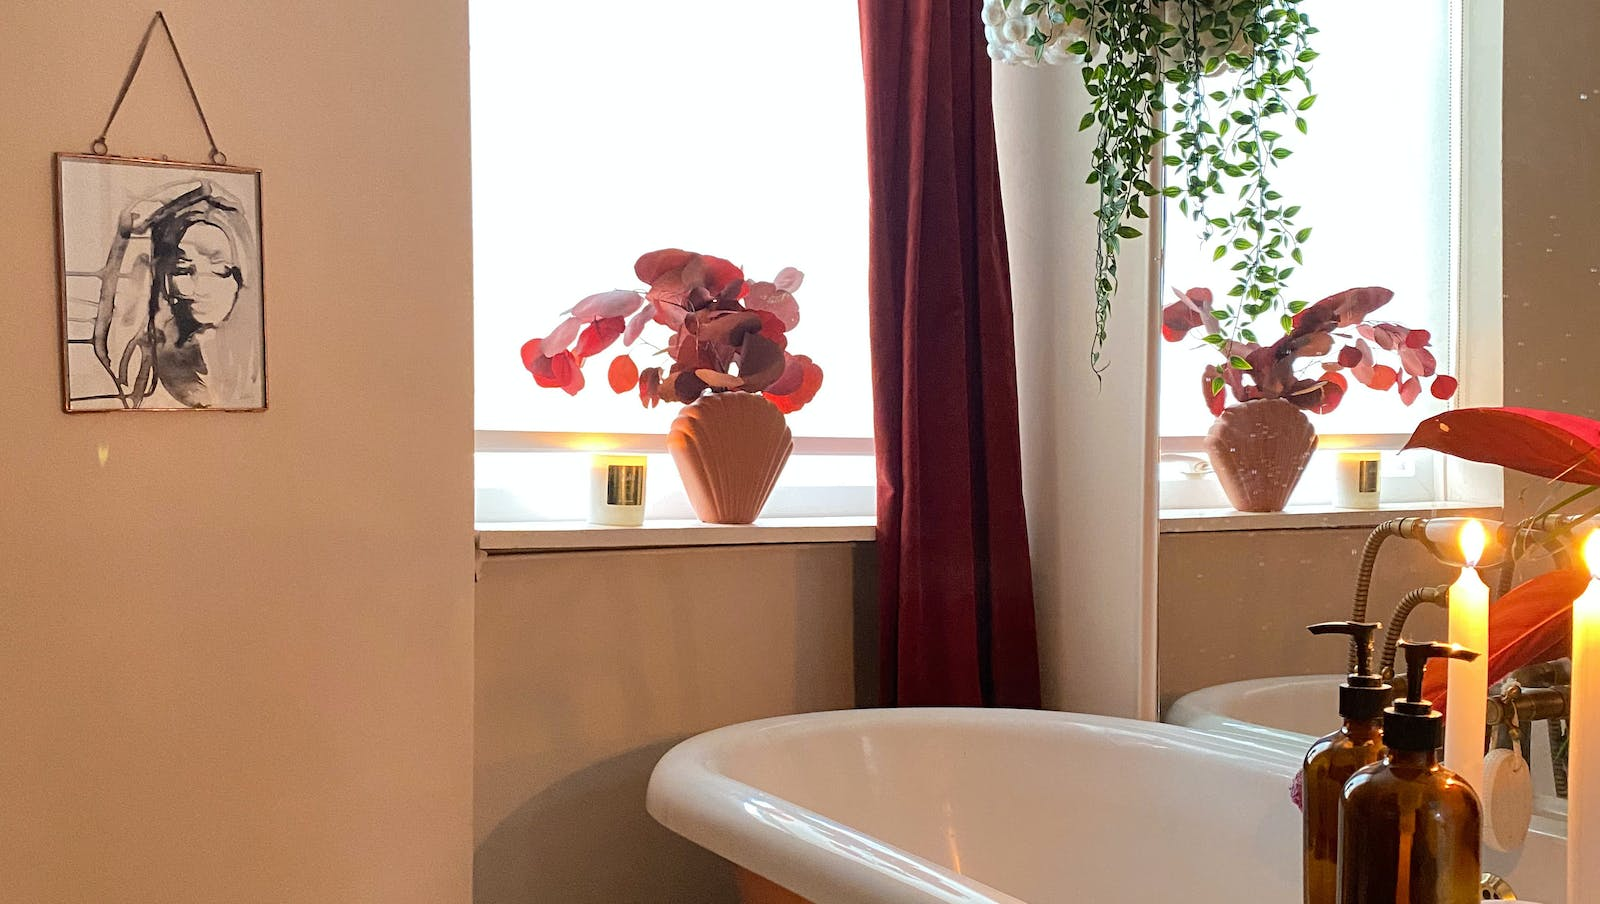 Image of cosy bathtub scene with lit candles, flowers and hanging plants.